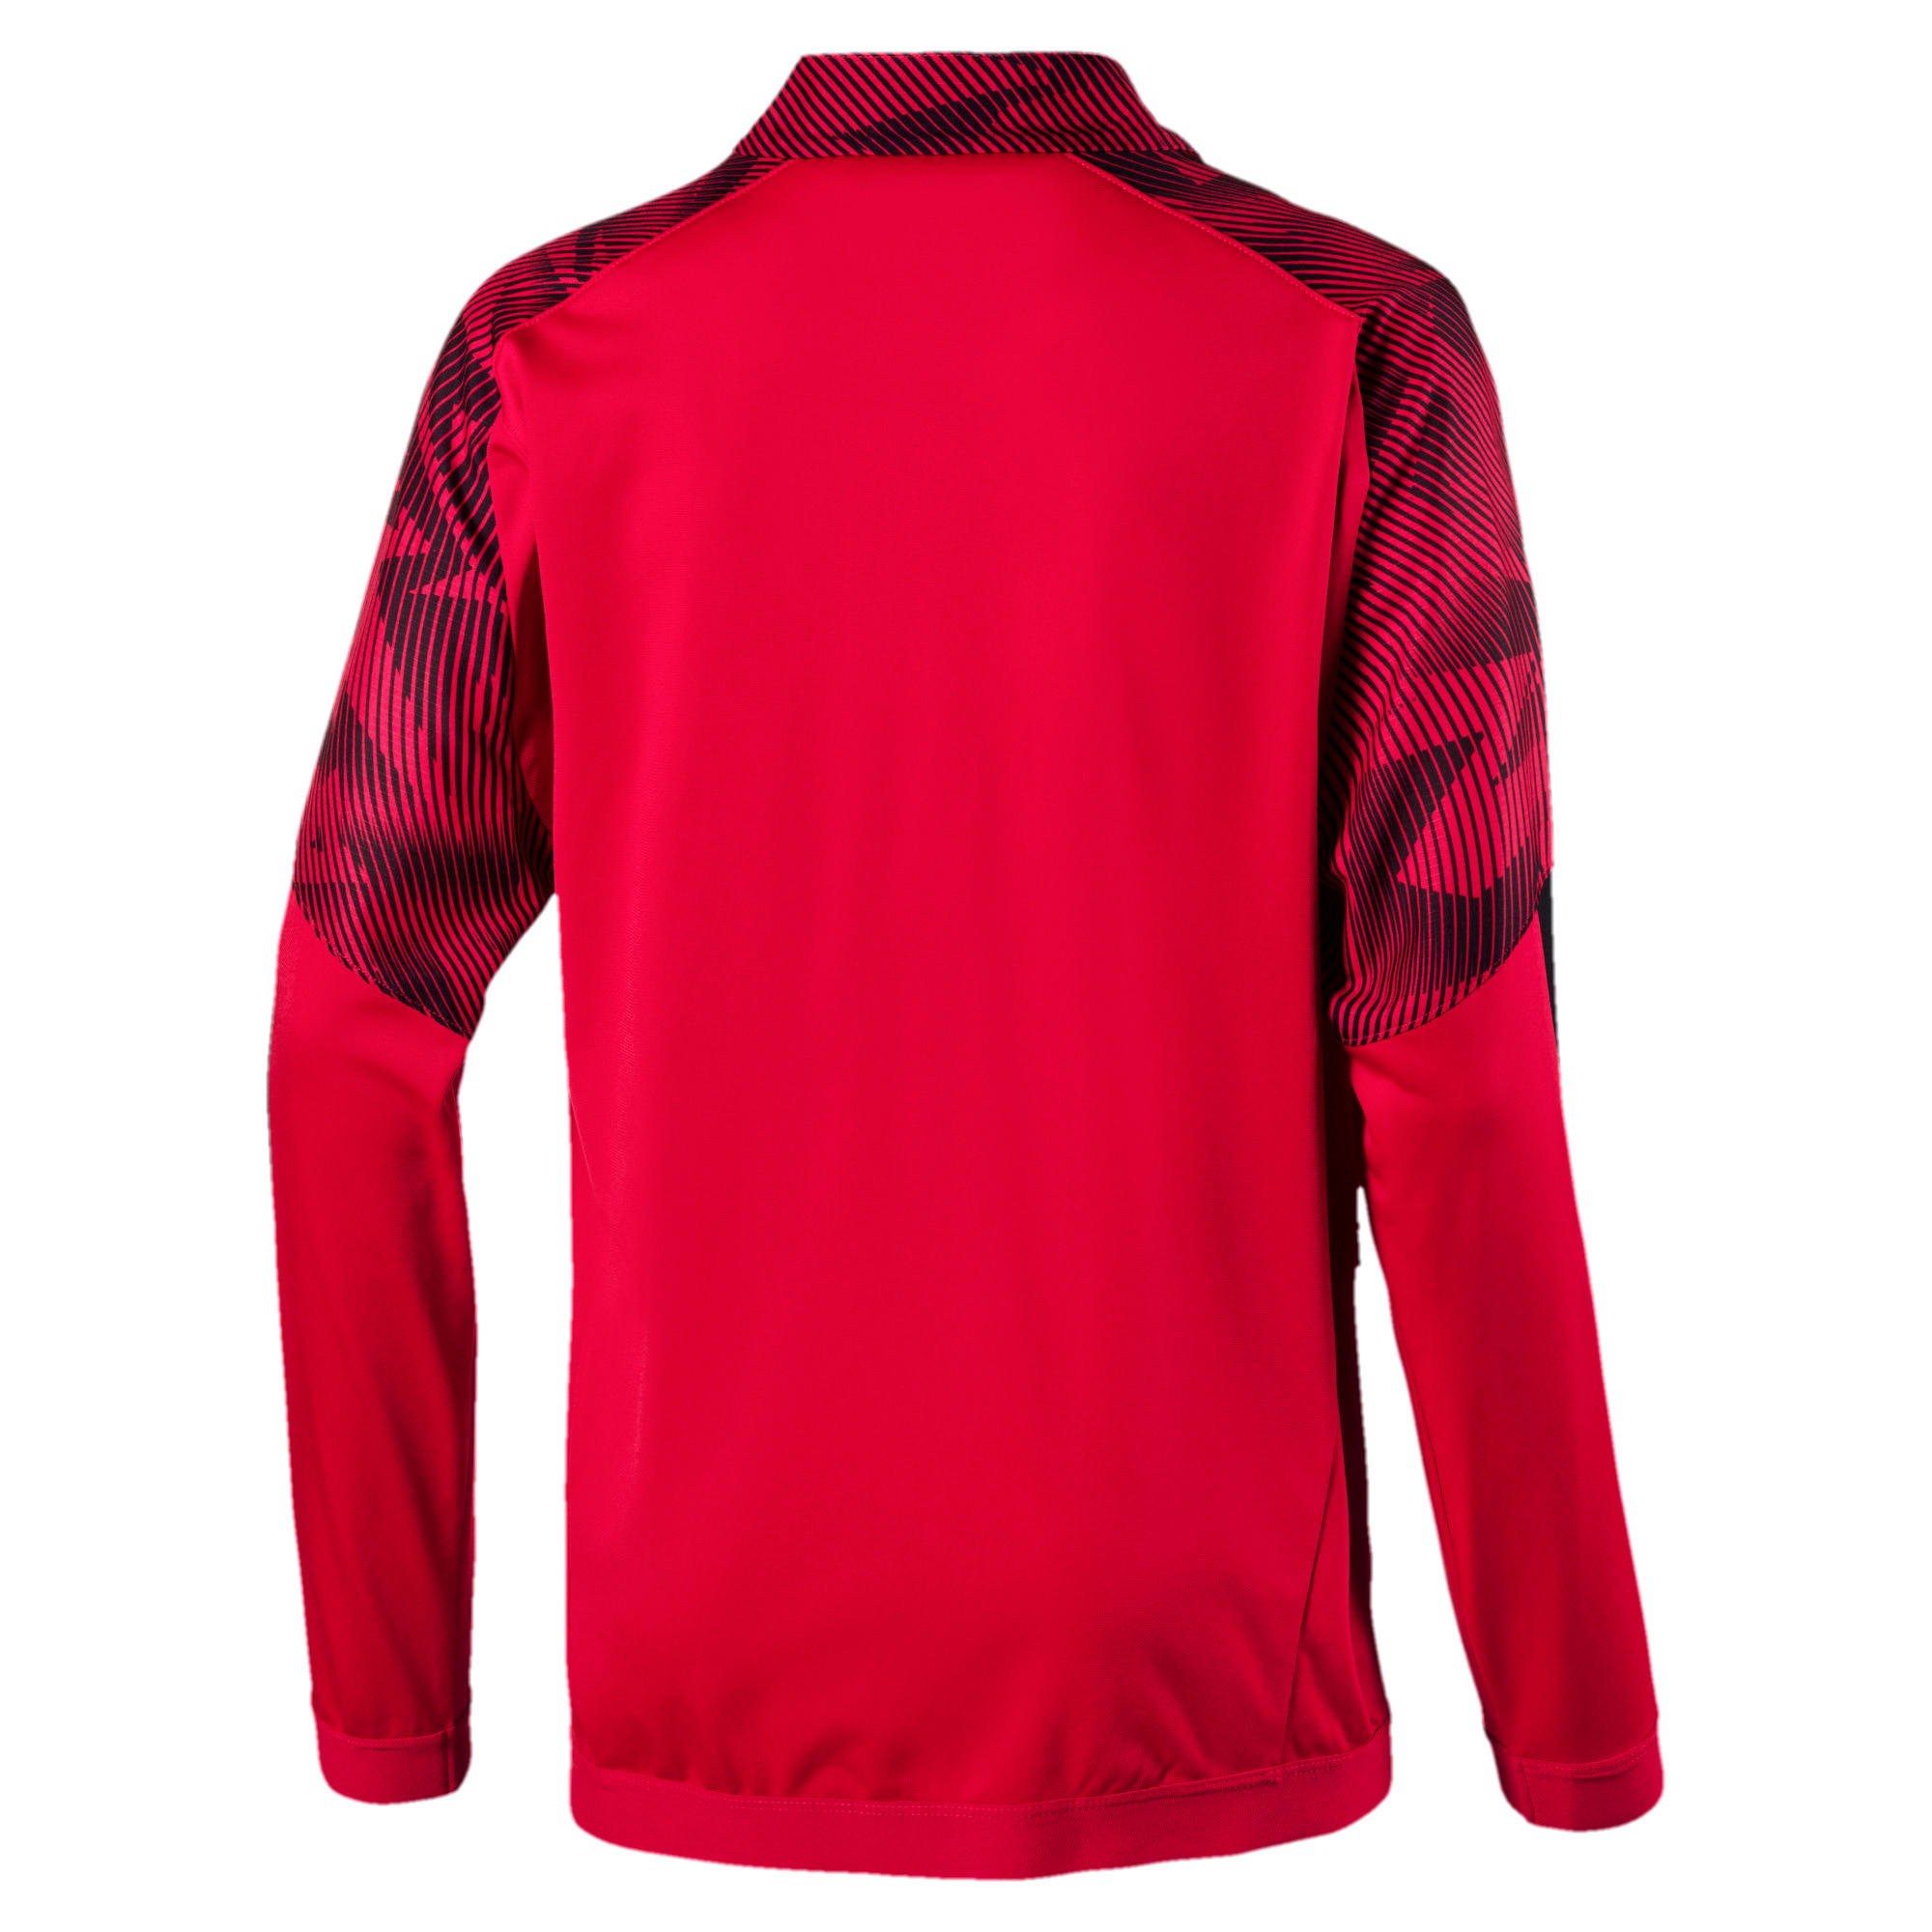 Thumbnail 2 of AC Milan Boys' Poly Jacket, Tango Red -Puma Black, medium